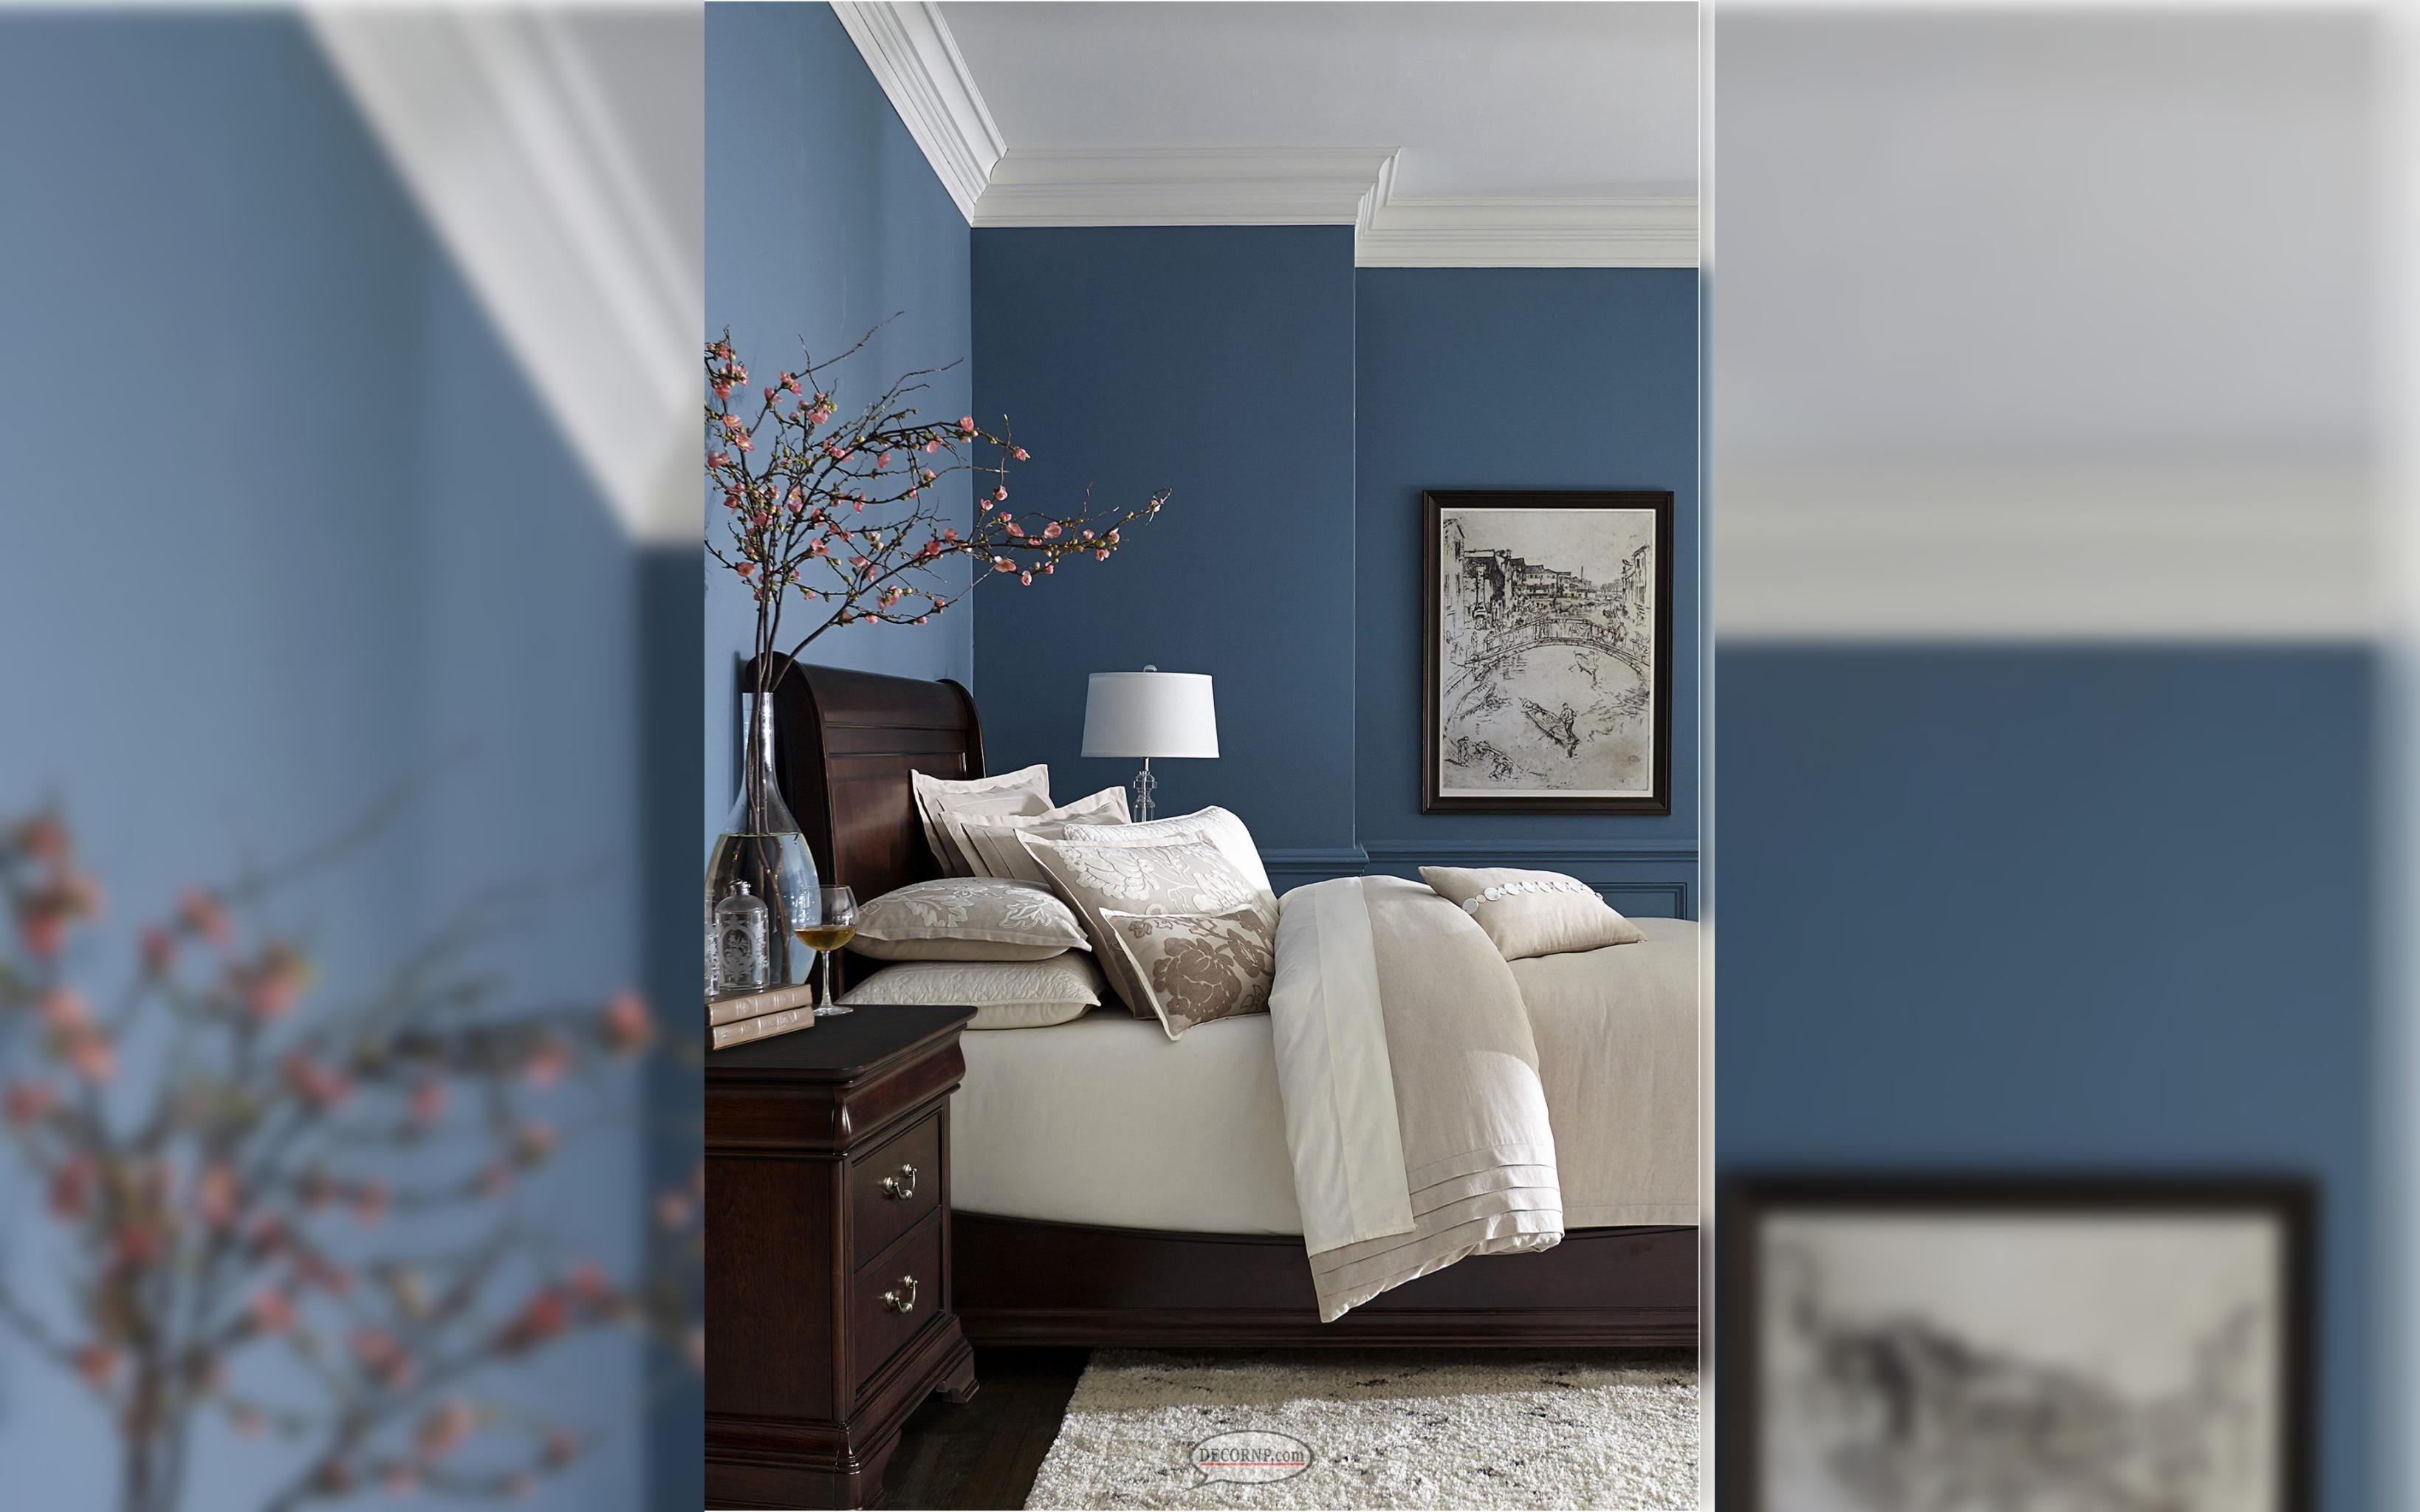 Best ideas about Bedroom Colors 2019 . Save or Pin Decor Colors 2019 Now.